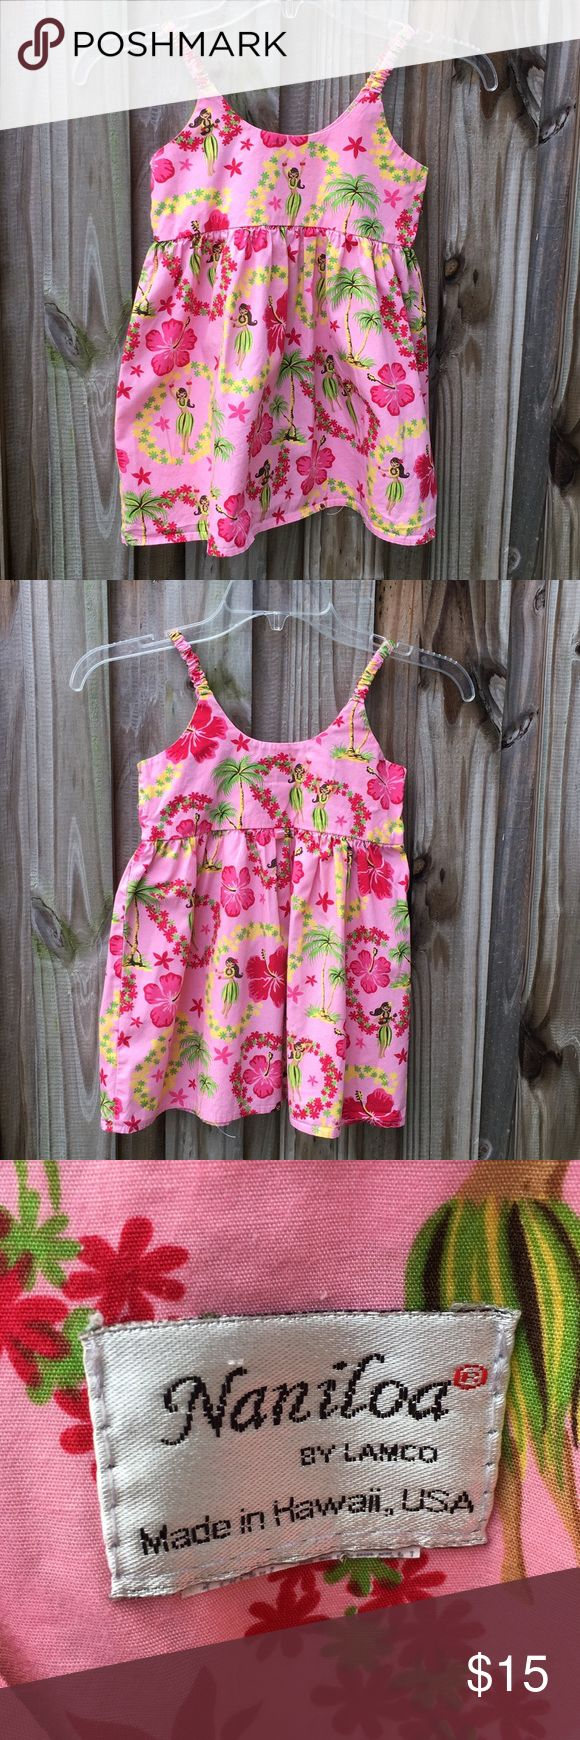 """Hawaiian girls dress. EUC Hawaiian girls dress. EUC. No size. All cotton. Brand is Naniloa. Pit to pit measures 12"""" across. Love this little cutie. There is one loop for a tie or belt in back. No belt with dress- I would tie a ribbon around it! naniloa Dresses Casual"""